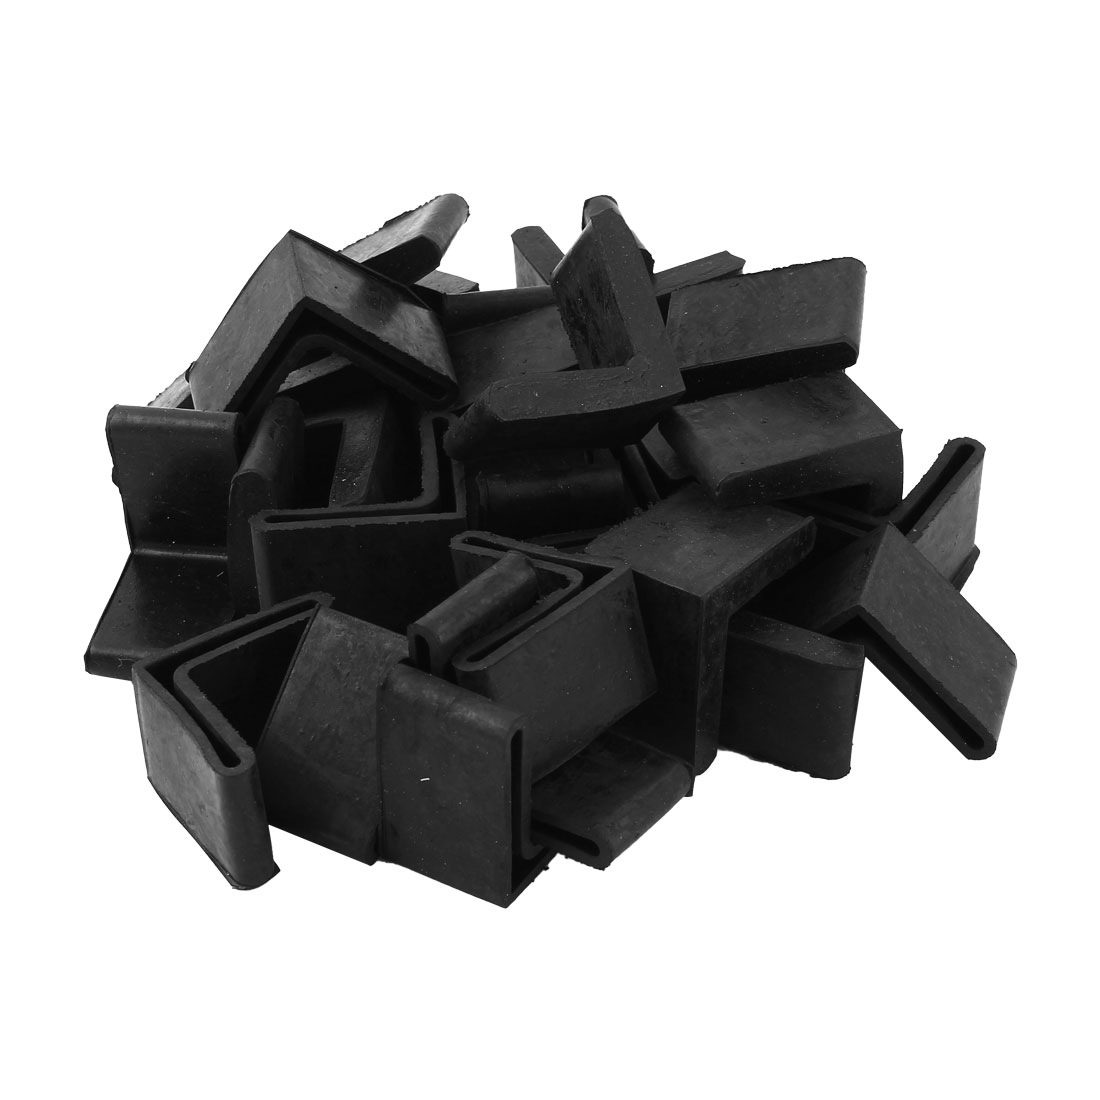 Home Rubber L Shape Furniture Foot Protector Cover Black 40mm x 40mm 29 Pcs